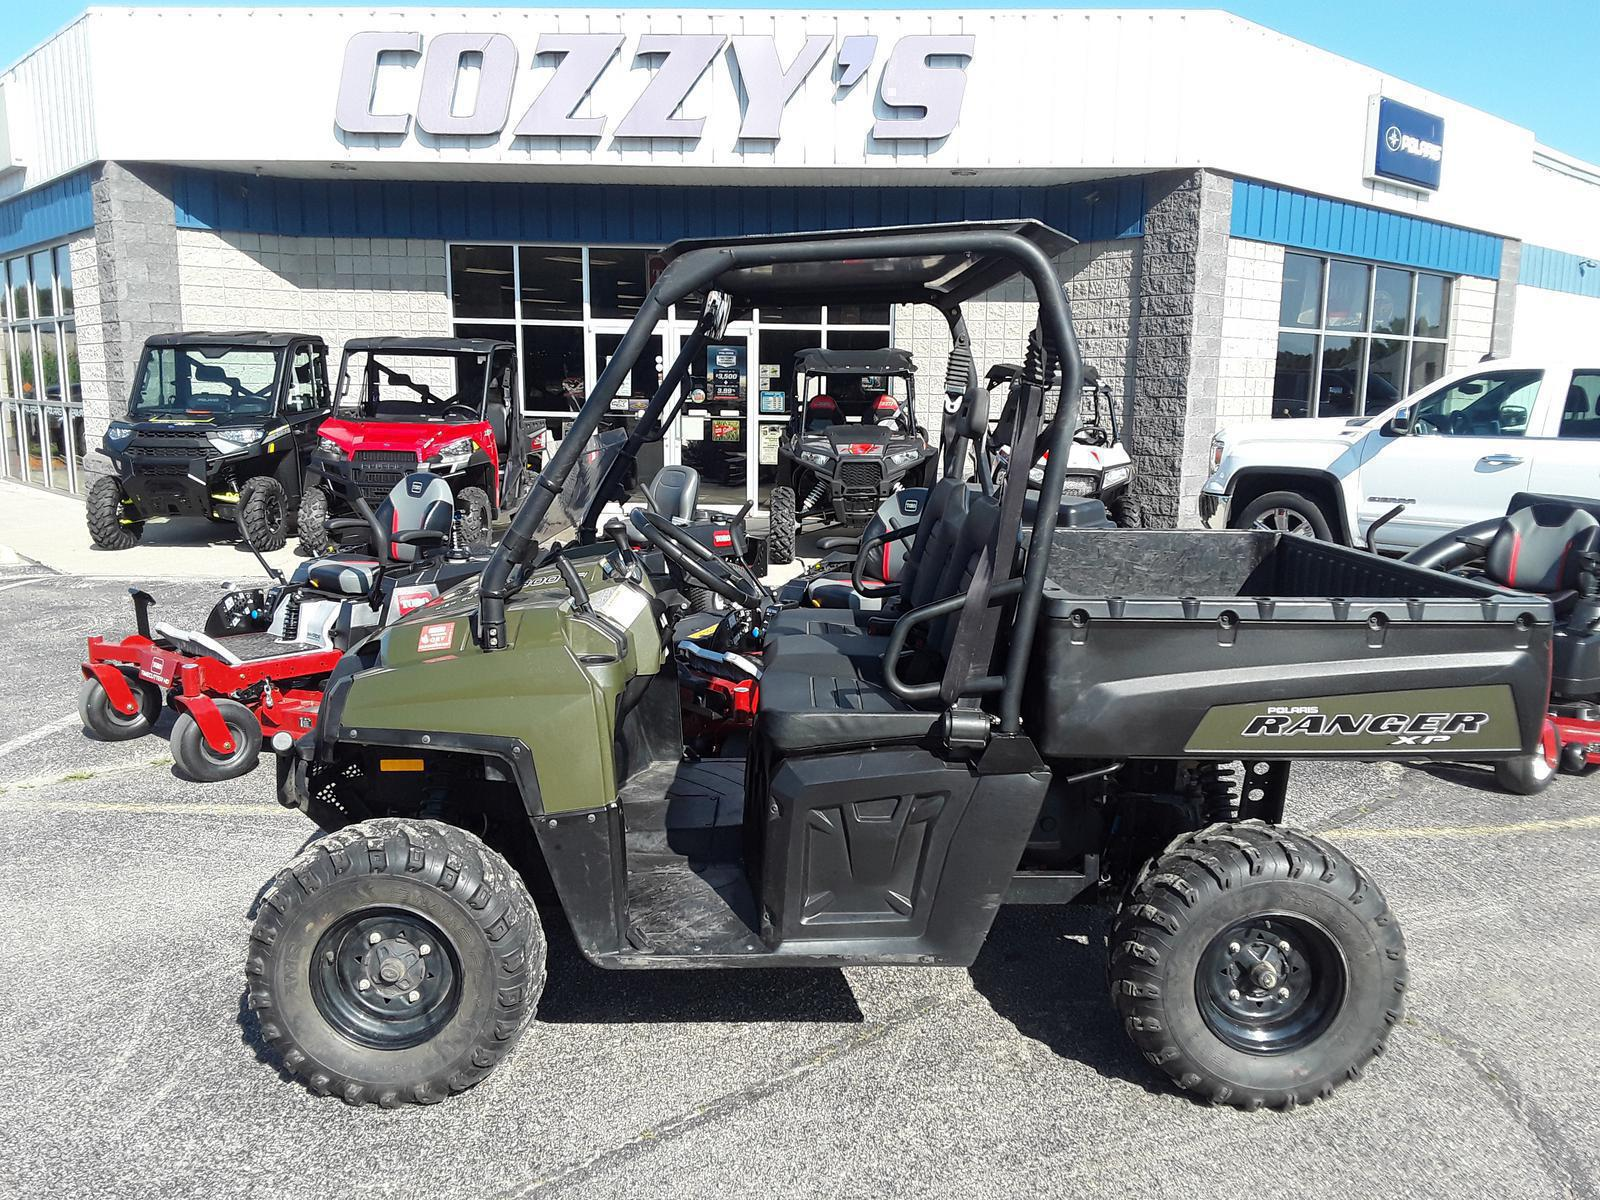 Inventory Cozzy's Marinette, WI 715-732-6501